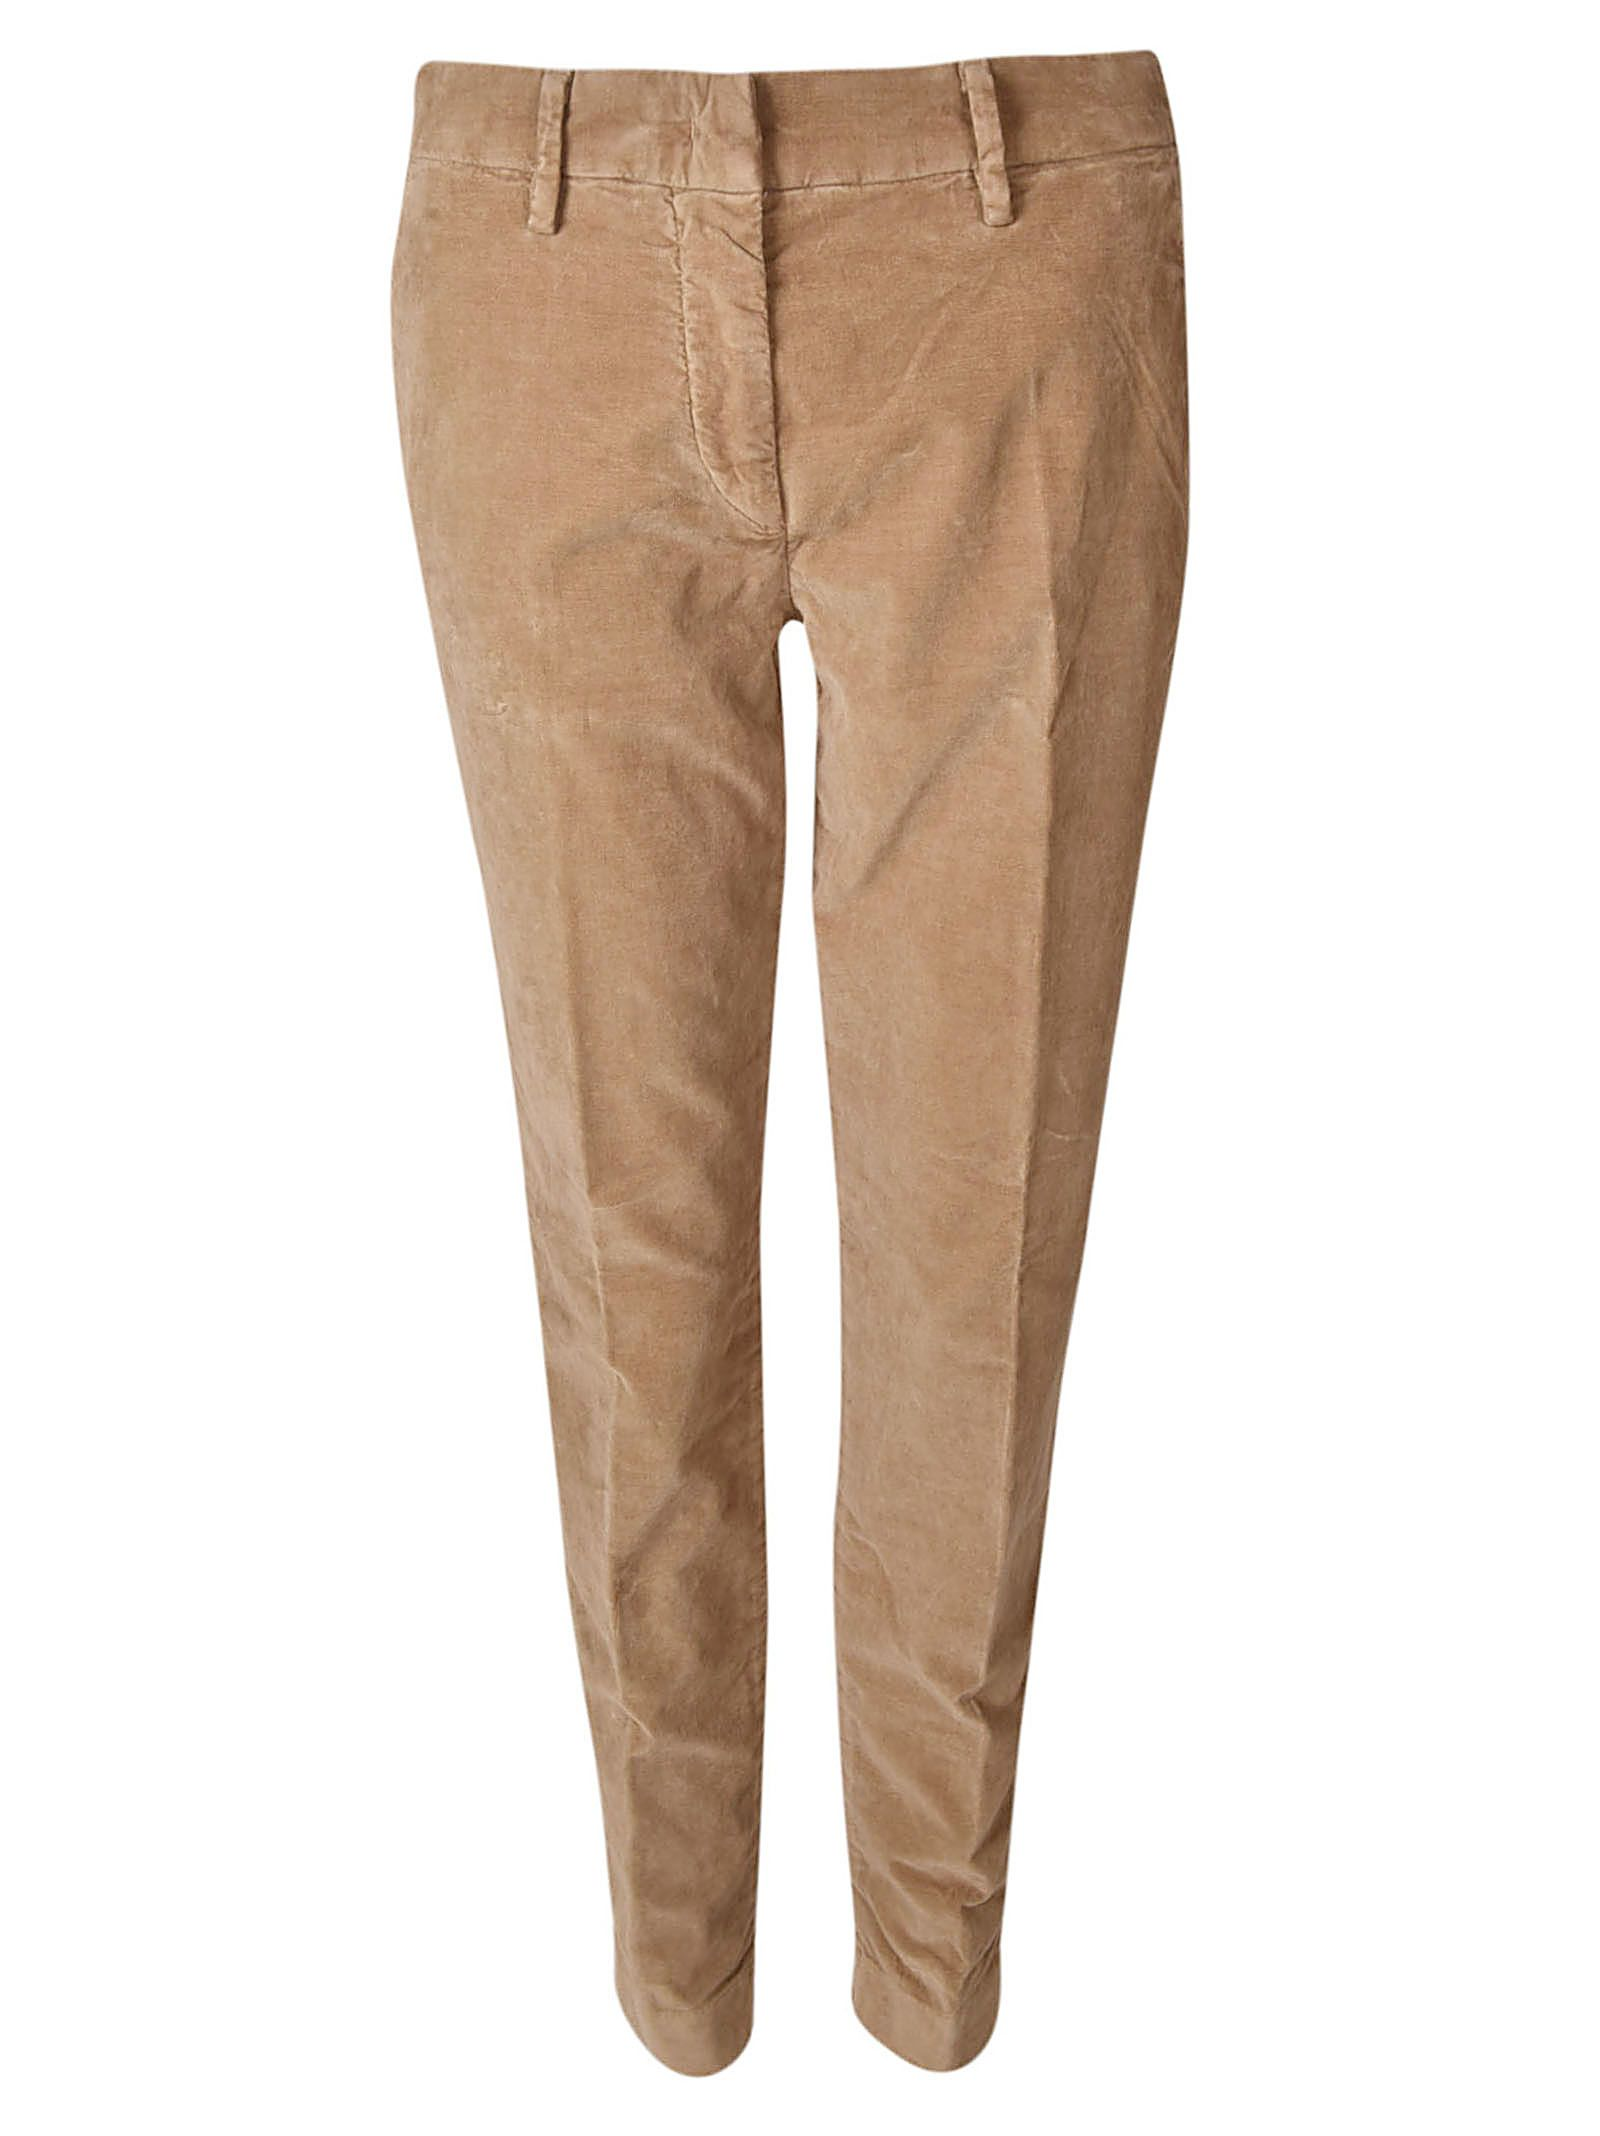 MASON'S Chino Trousers in Brown